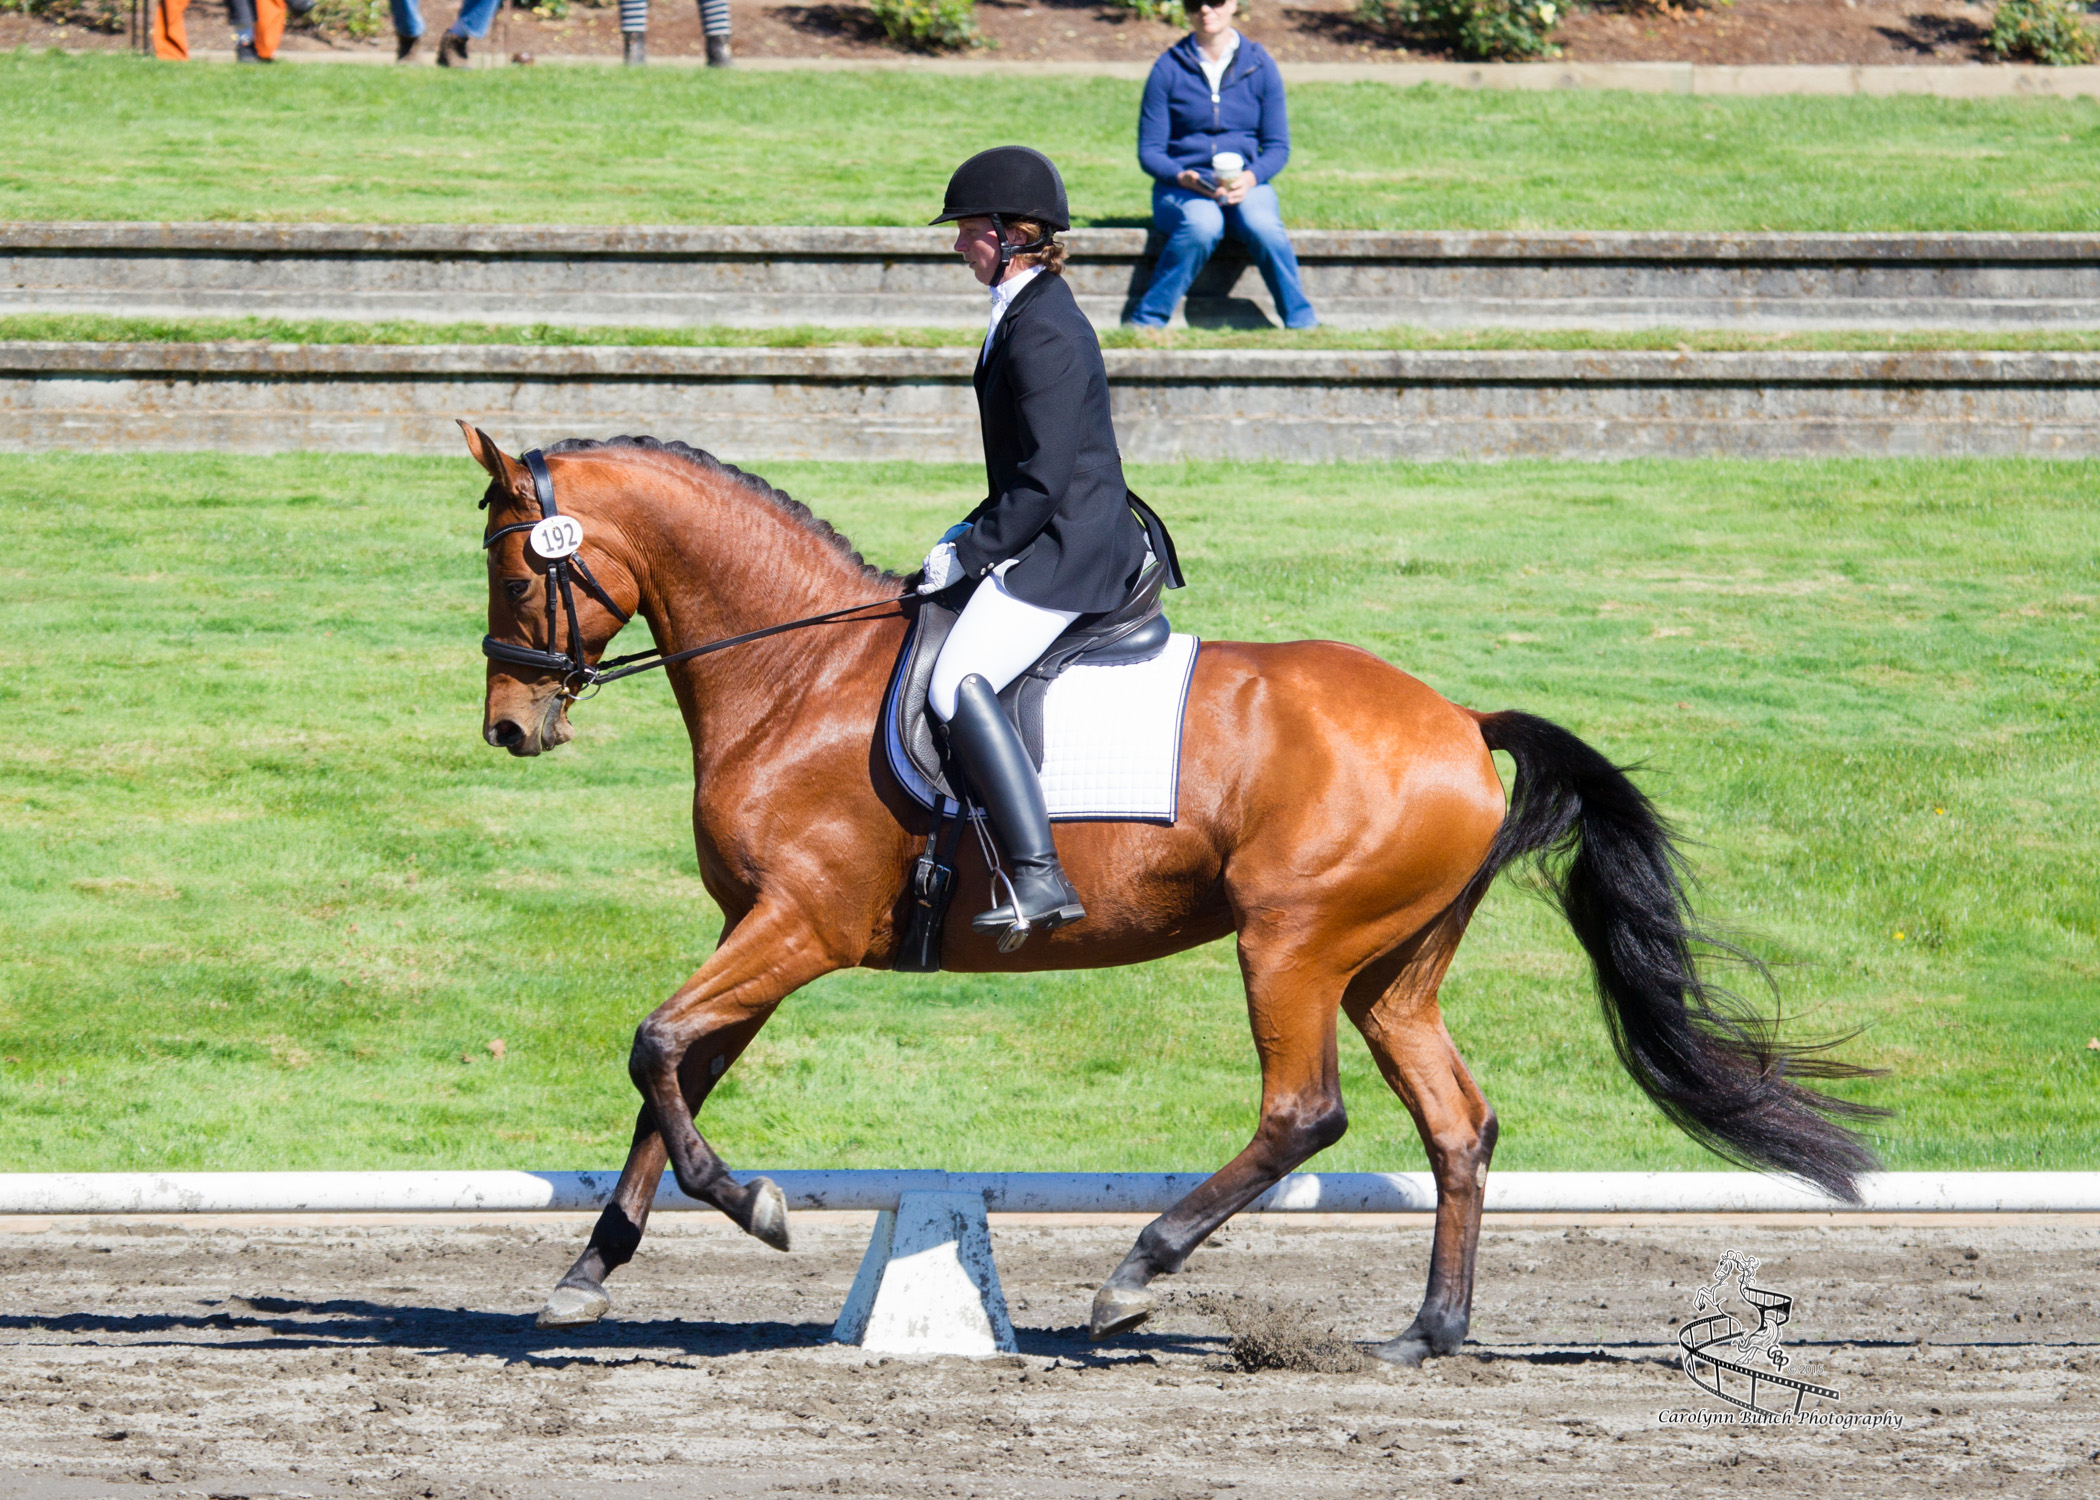 2015 USDF Region 6 Championship, Catalina and Emily, Sherwood, OR  Photo: Carolynn Bunch